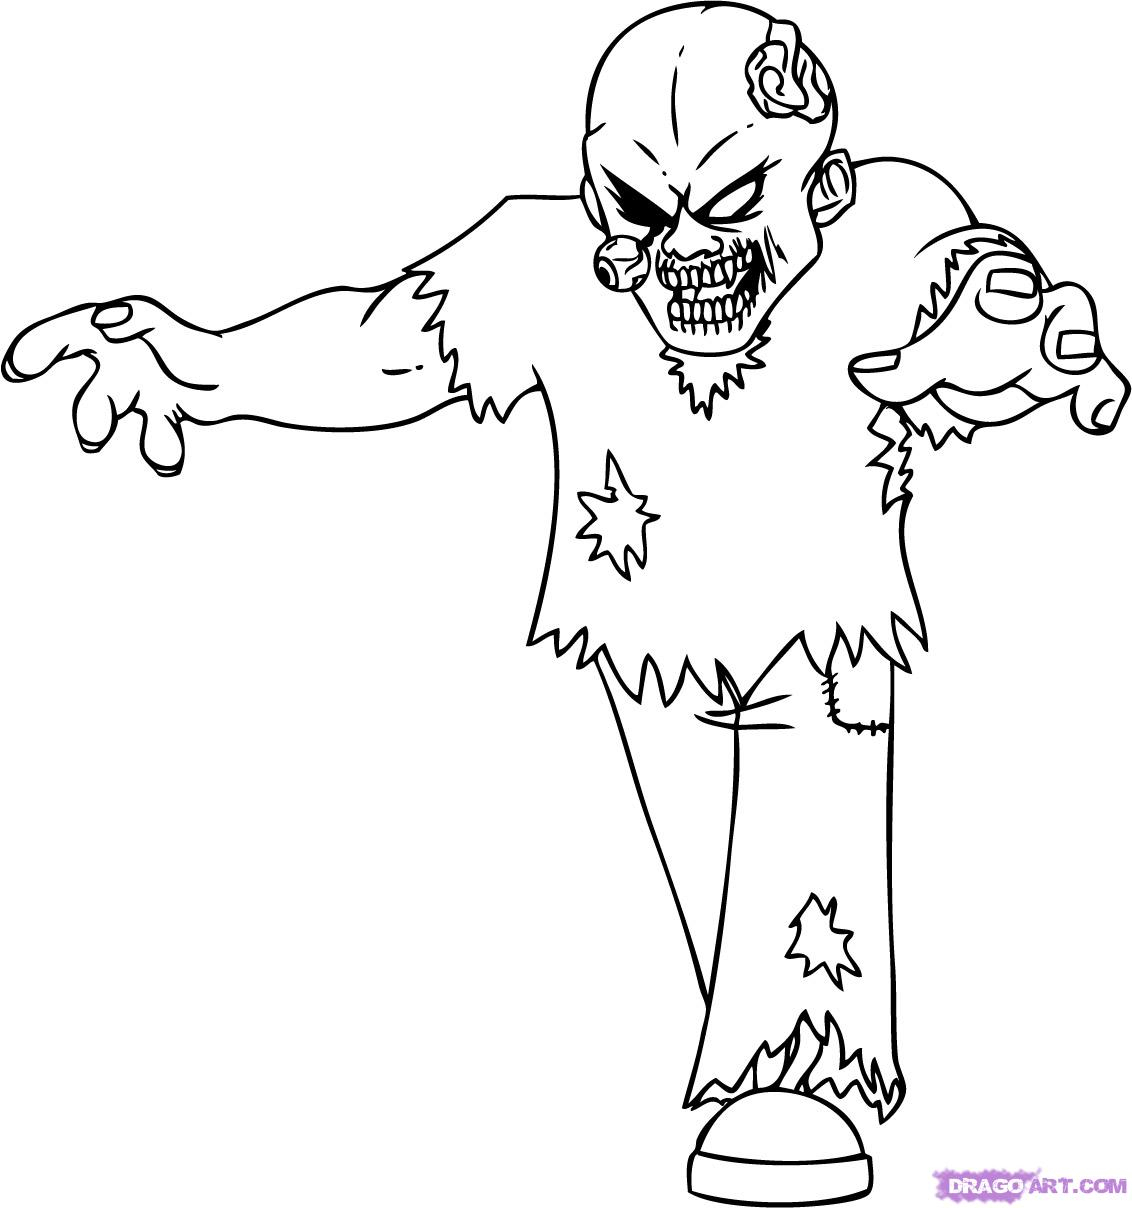 1132x1208 Zombie Drawings Step By Step How To Draw A Cartoon Zombie